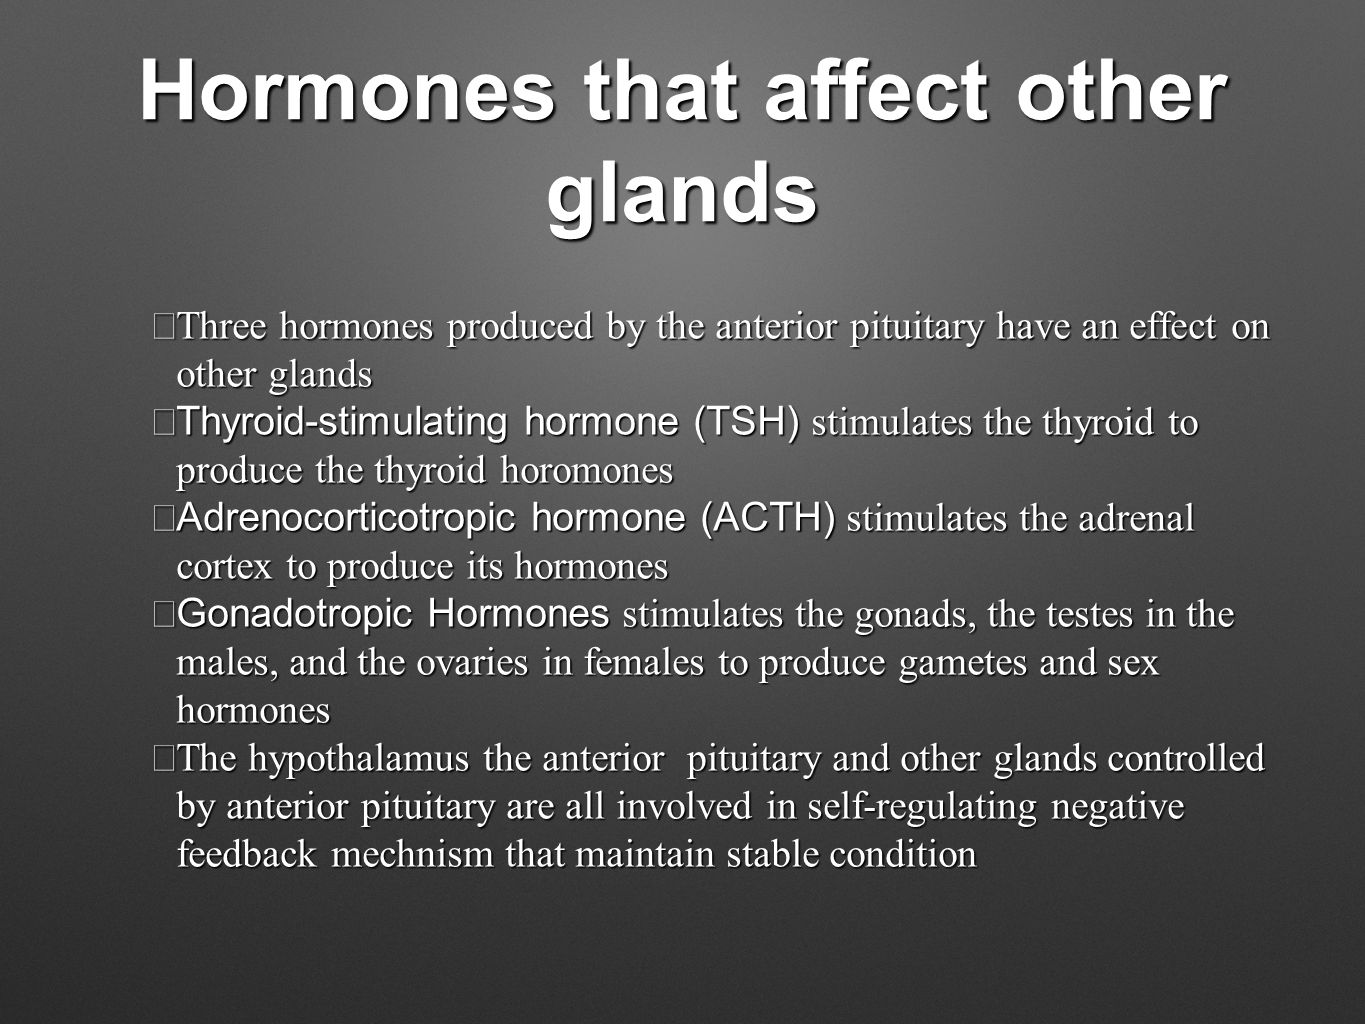 Hormones that affect other glands  Three hormones produced by the anterior pituitary have an effect on other glands  Thyroid-stimulating hormone (TSH) stimulates the thyroid to produce the thyroid horomones  Adrenocorticotropic hormone (ACTH) stimulates the adrenal cortex to produce its hormones  Gonadotropic Hormones stimulates the gonads, the testes in the males, and the ovaries in females to produce gametes and sex hormones  The hypothalamus the anterior pituitary and other glands controlled by anterior pituitary are all involved in self-regulating negative feedback mechnism that maintain stable condition